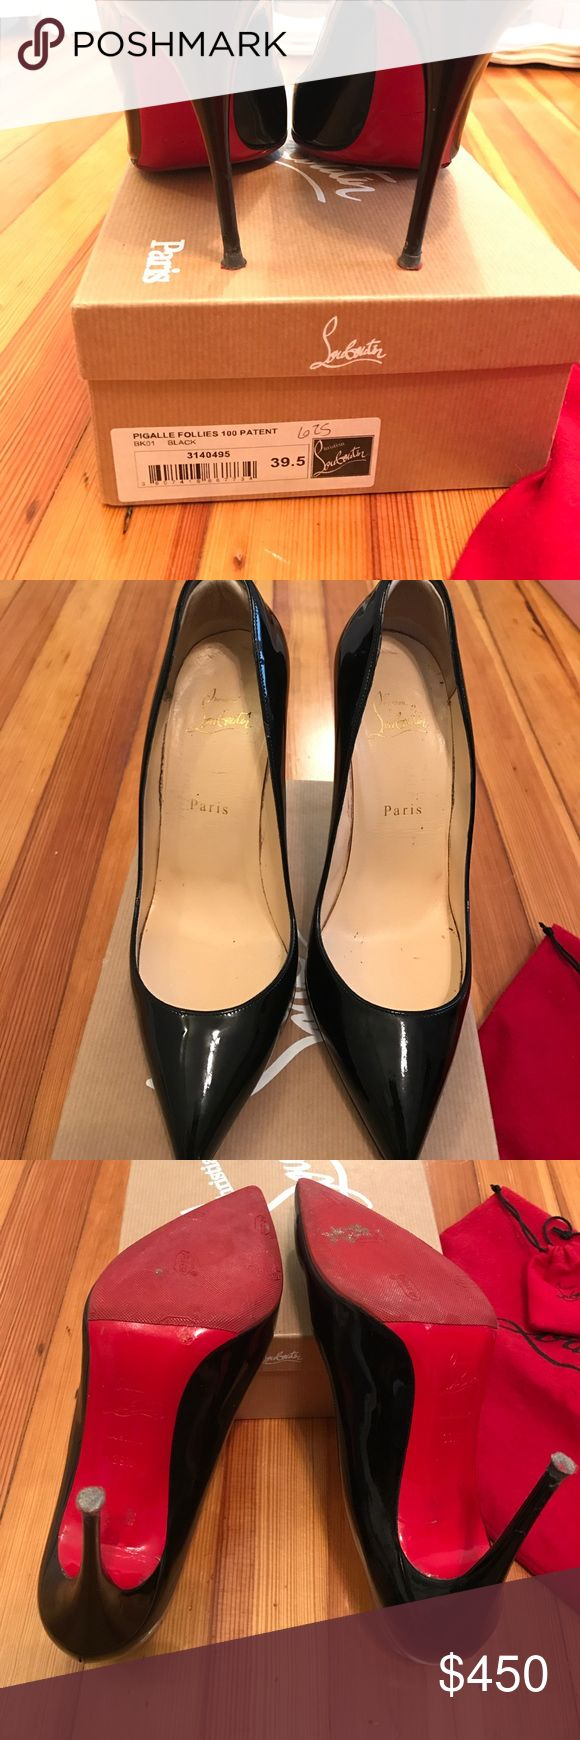 Christian Louboutin Pigalle RE-Posh - just bought these from another posher and sadly they don't fit. 9.5 (I'm normally an 8.5/9) but never had this shoe so wasn't sure about sizing. Previous owner put on sole protector and heel inserts which previous seller said can be removed. Normal wear on bottoms, box dust bag and extra heel tips included. Really wish these fit me 😢 (listed at what I paid with what posh takes) Christian Louboutin Shoes Heels